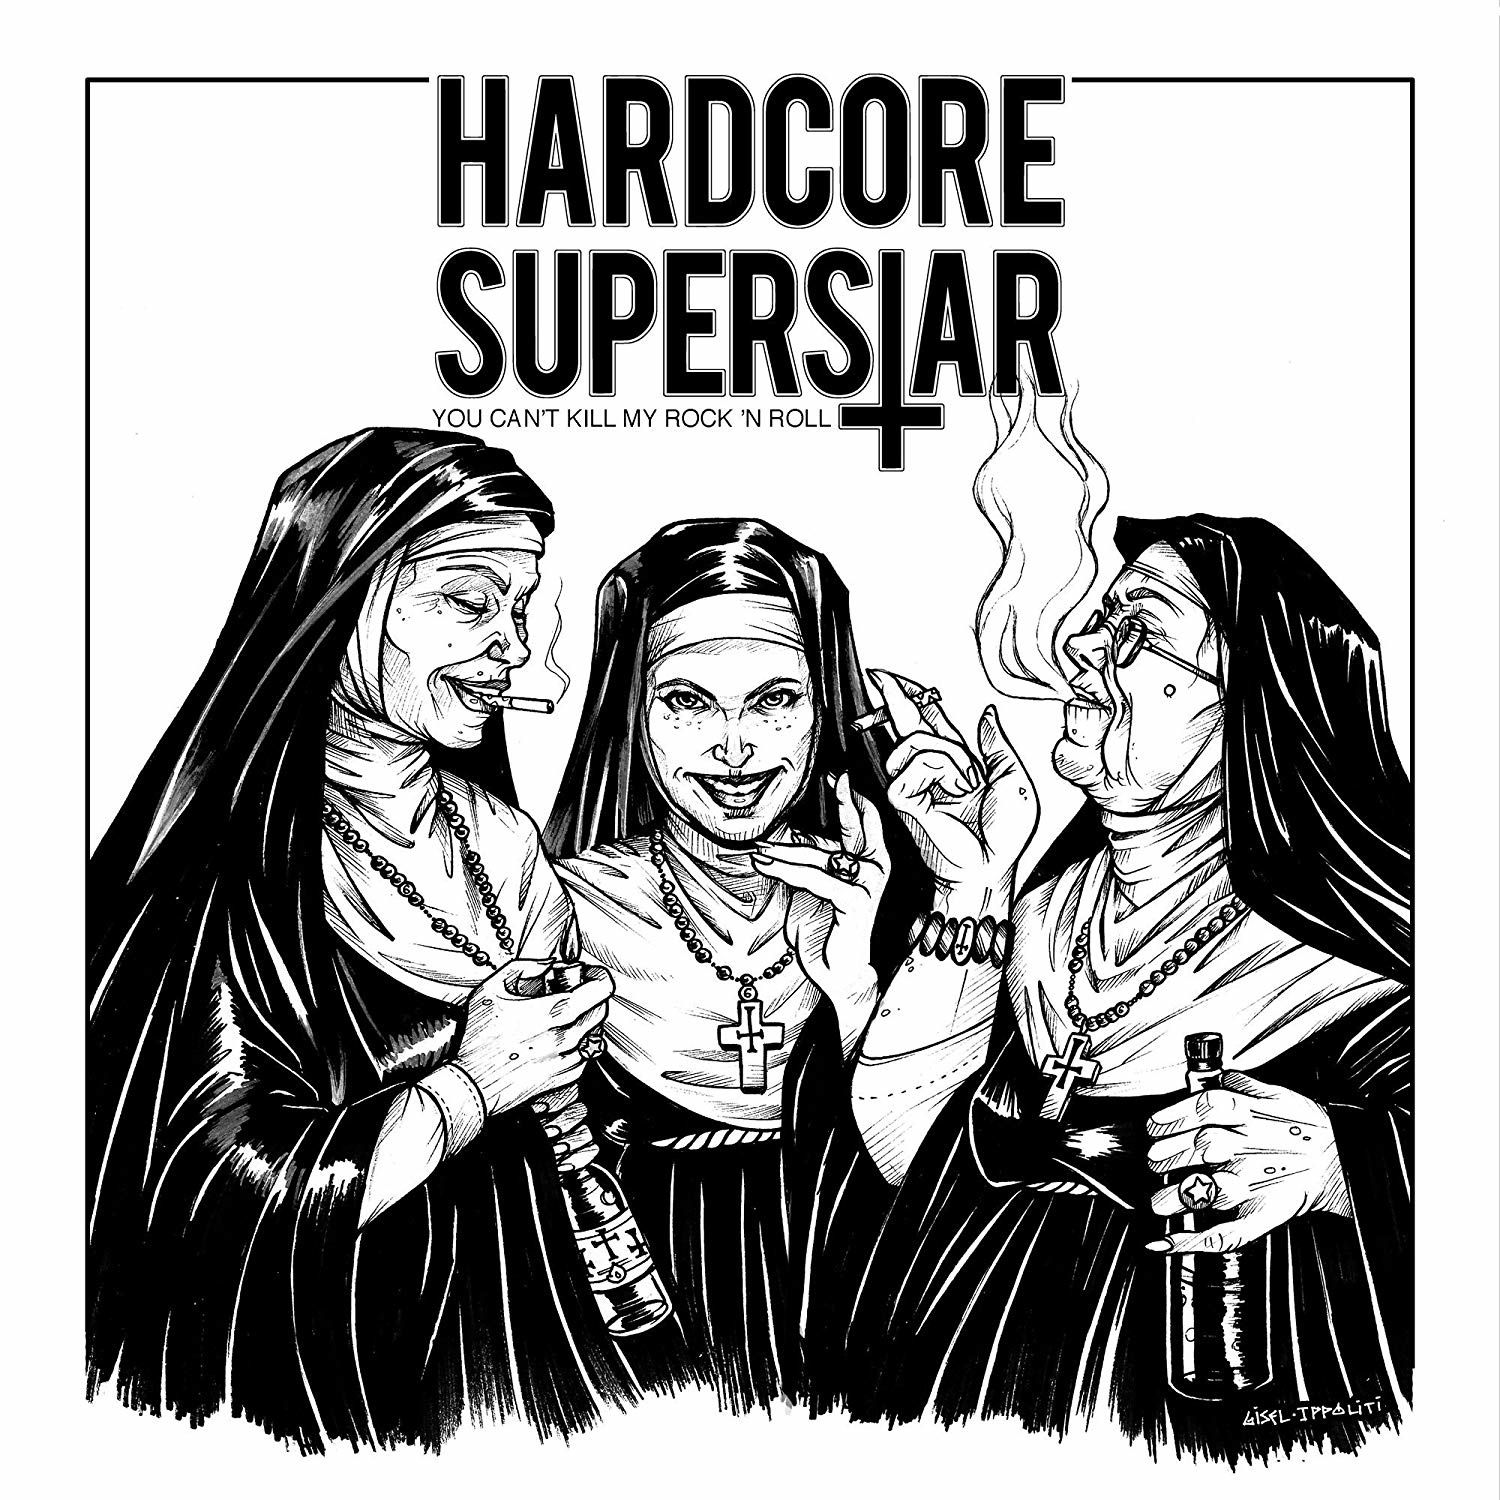 10. HARDCORE SUPERSTAR - You can't kill my rock'n'roll